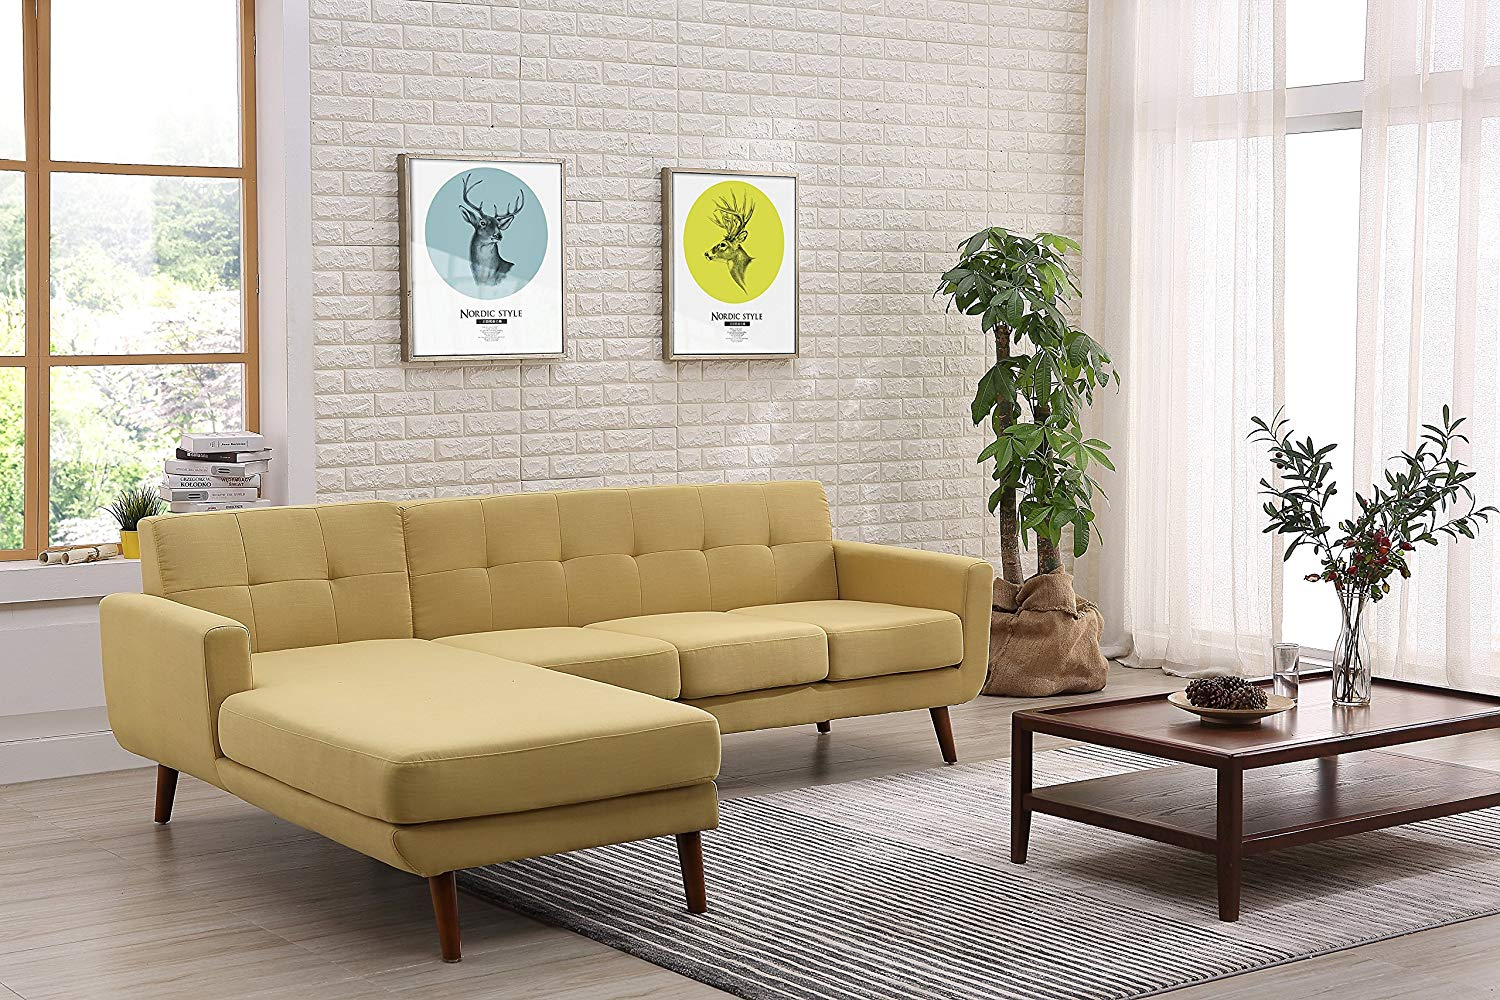 """Container Furniture Direct S0122L-2PC Andy Linen Upholstered Midcentury Modern Left-Sided Sectional Sofa, 69.29"""", Naples Yellow"""